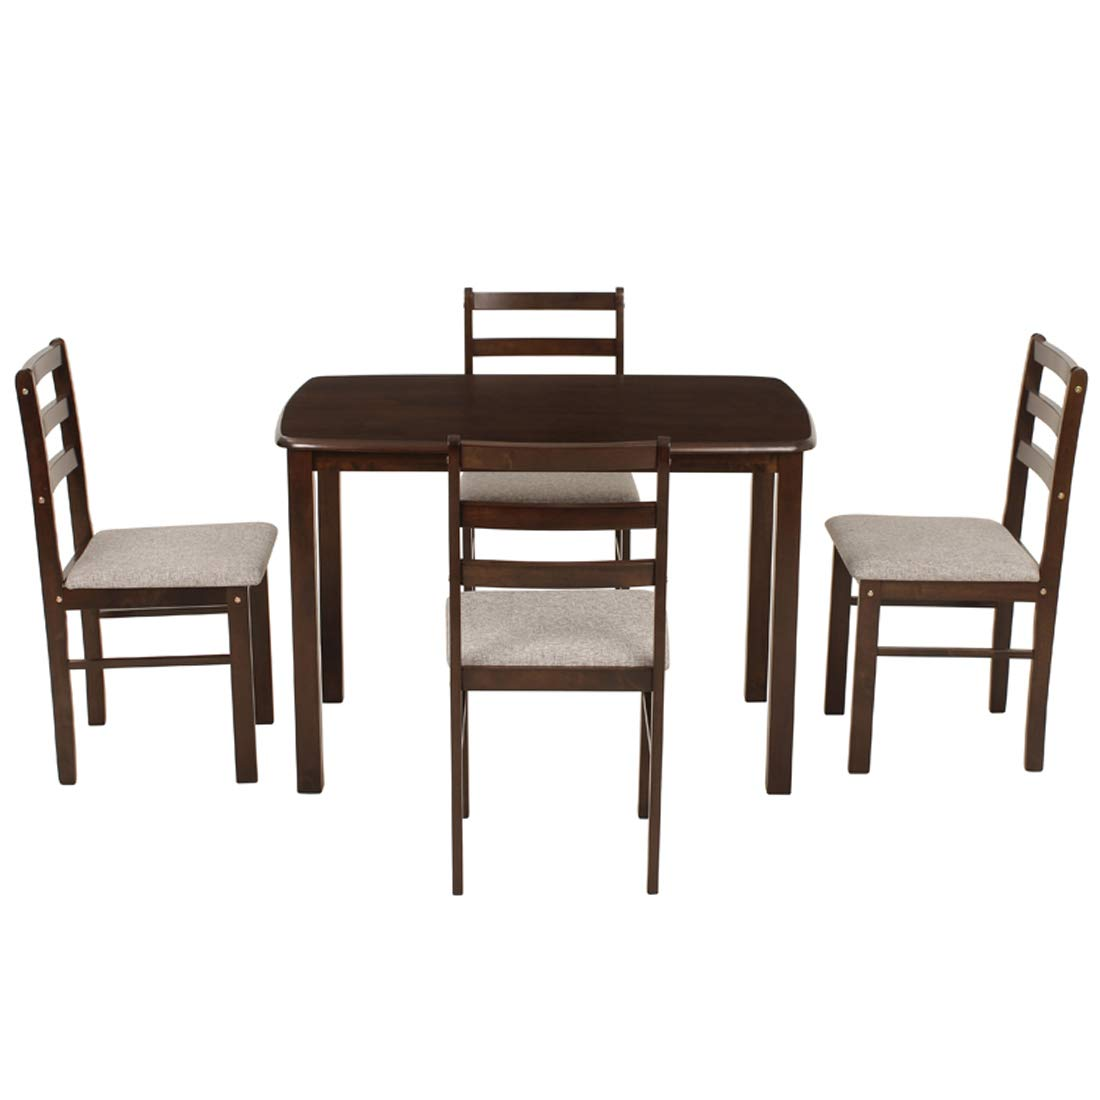 Dining Table Set Deals: Woodness Ivy Four Seater Dining Table Set At 78% Off Price